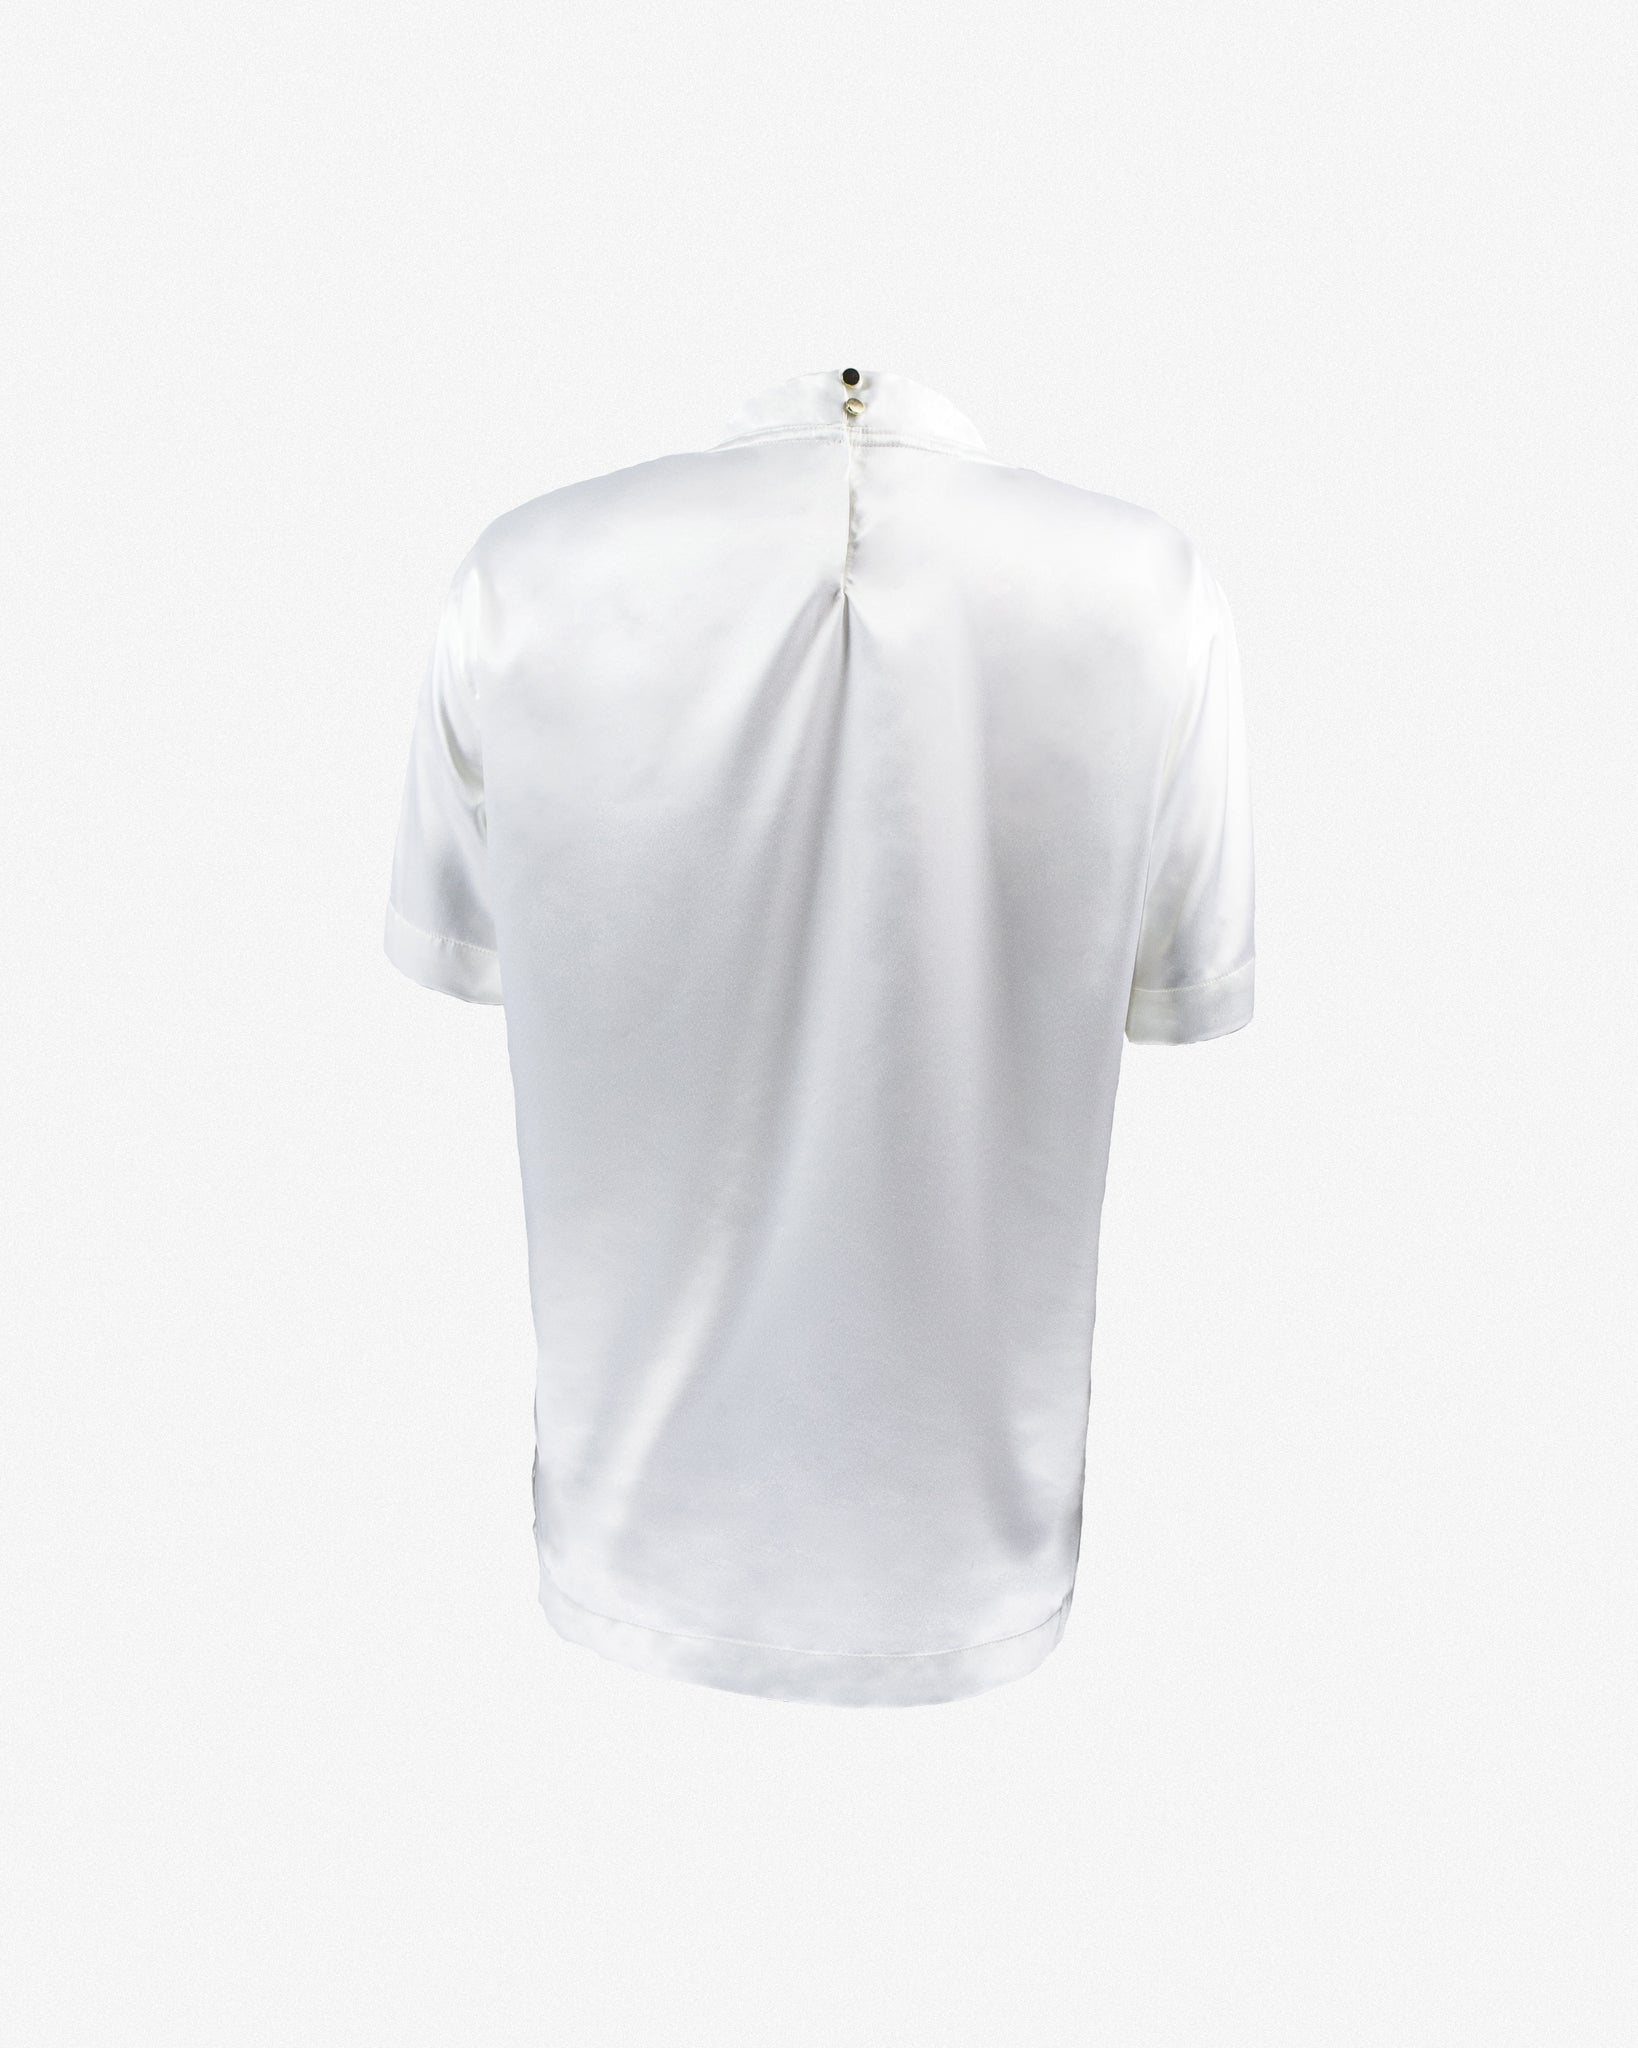 LOGO SILK T-SHIRT II IN WHITE